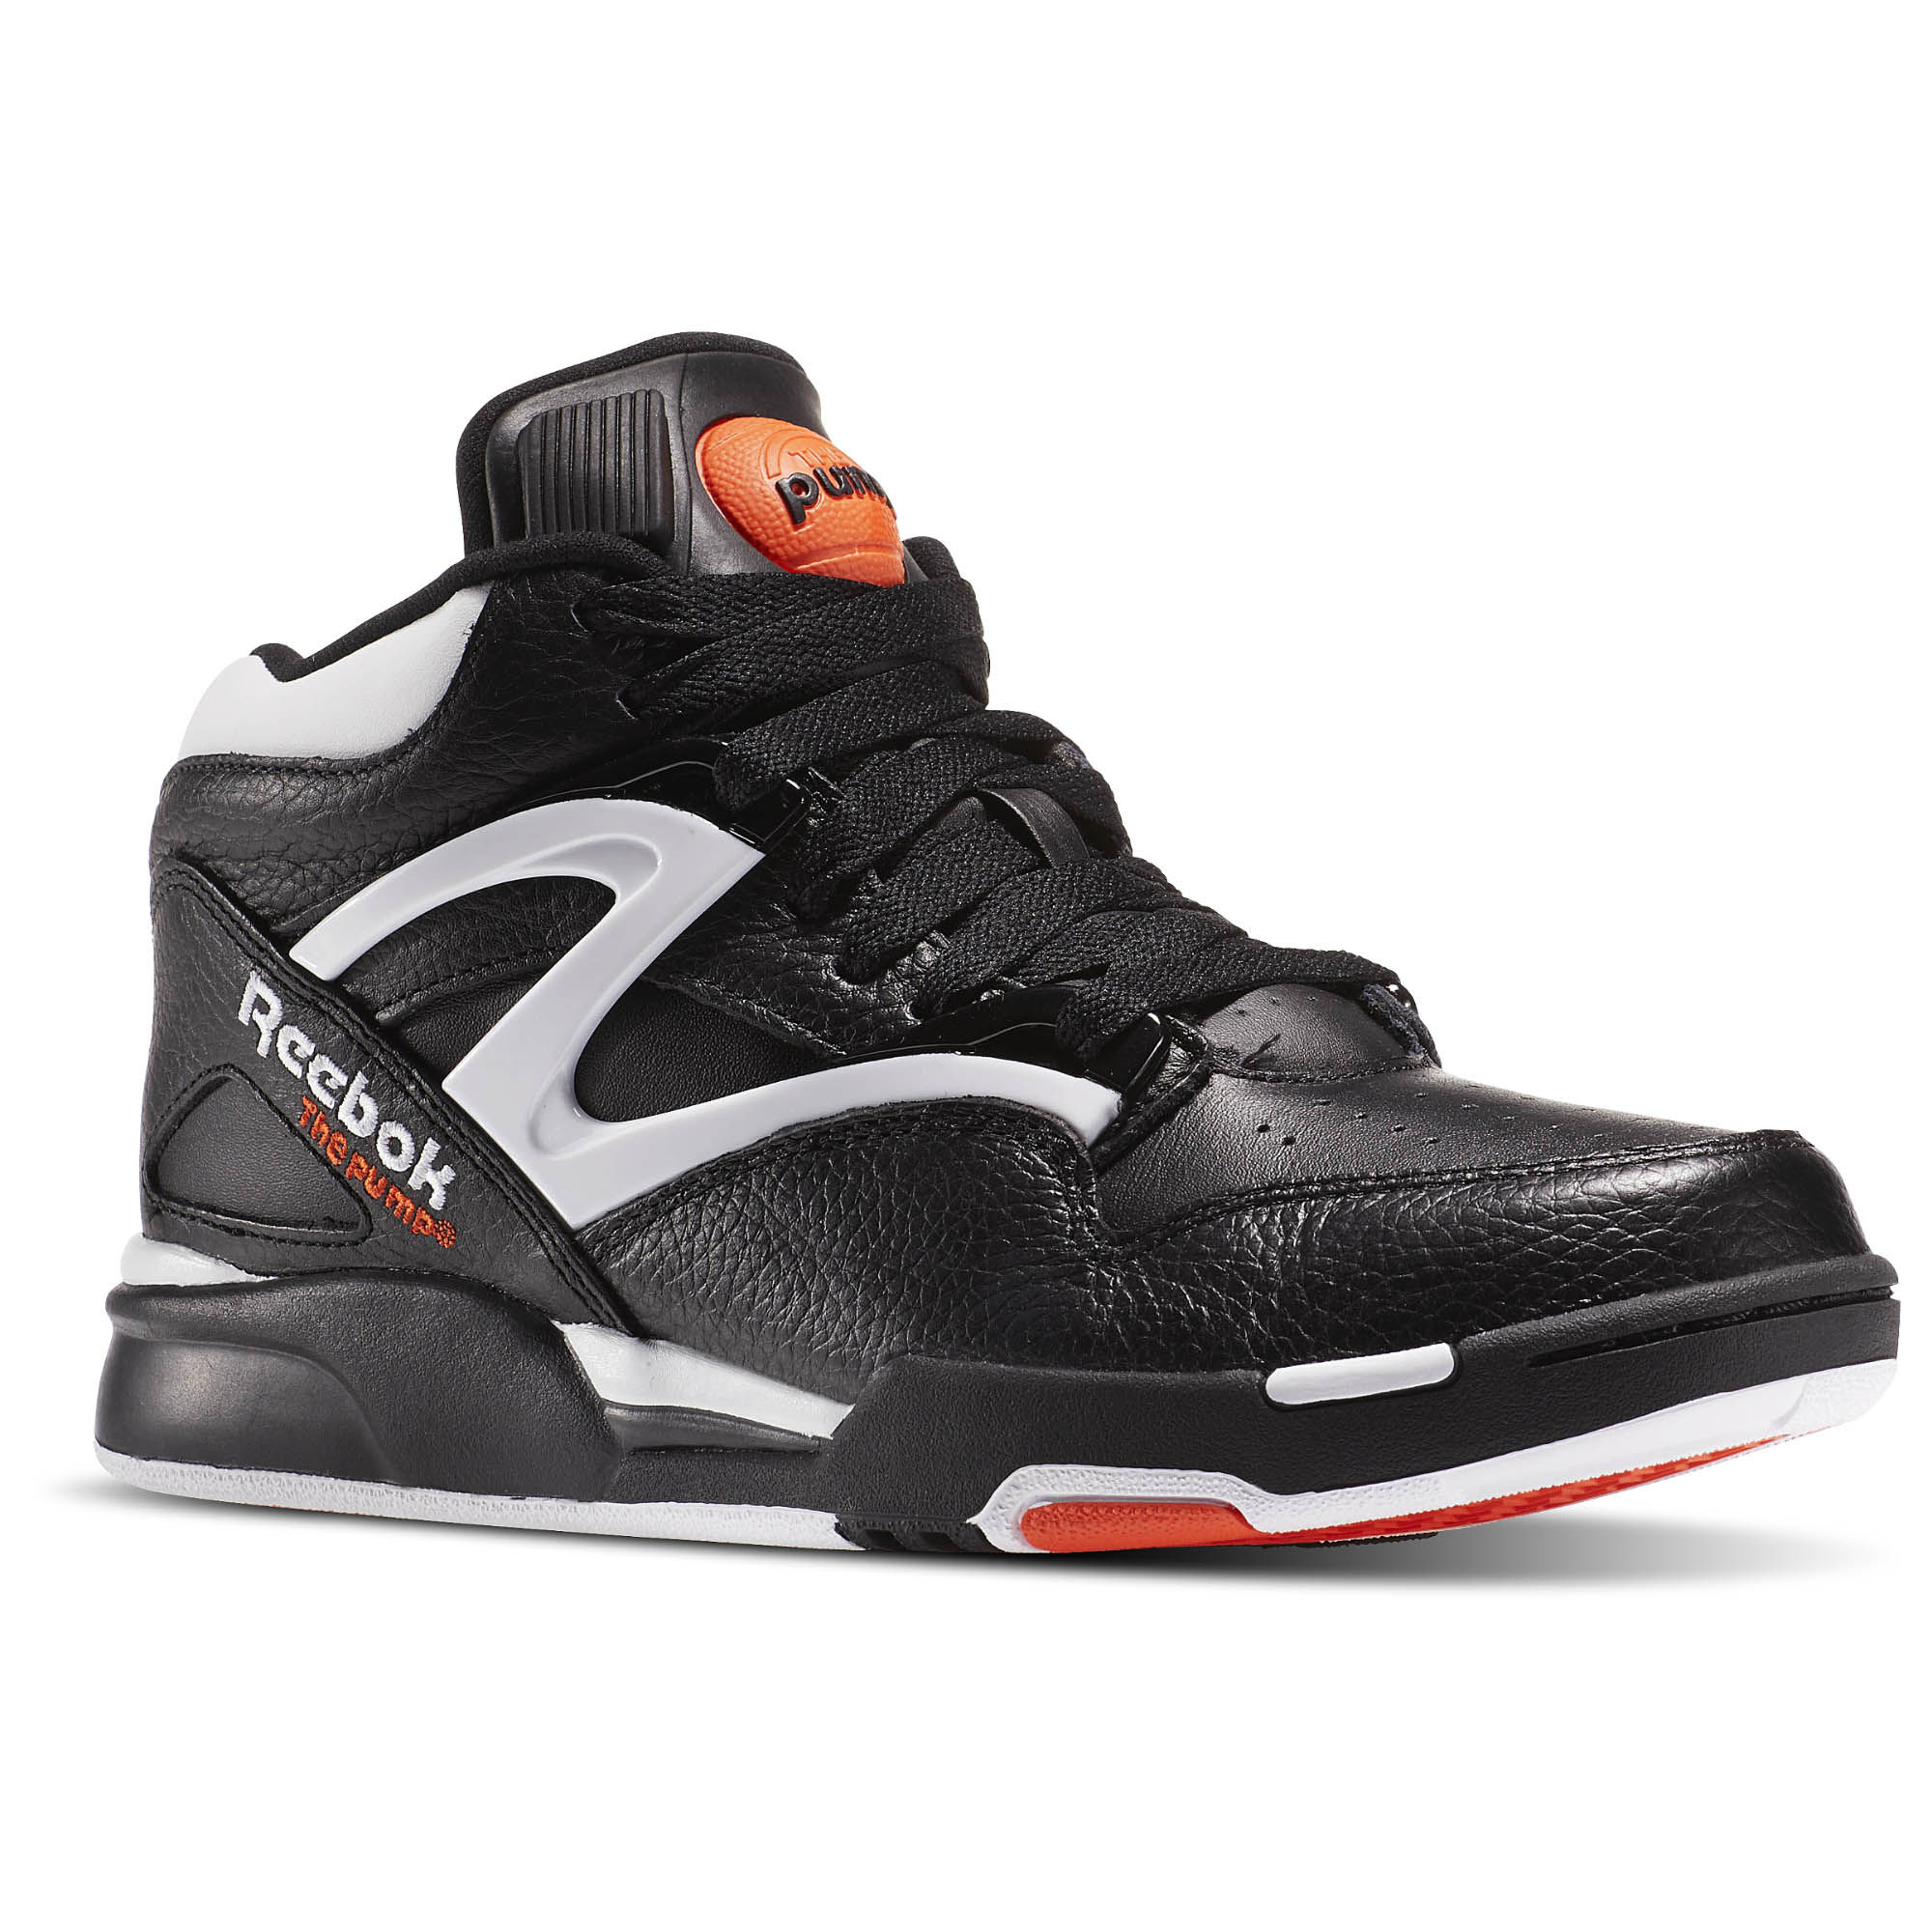 Reebok pump – A Great Sneaker!